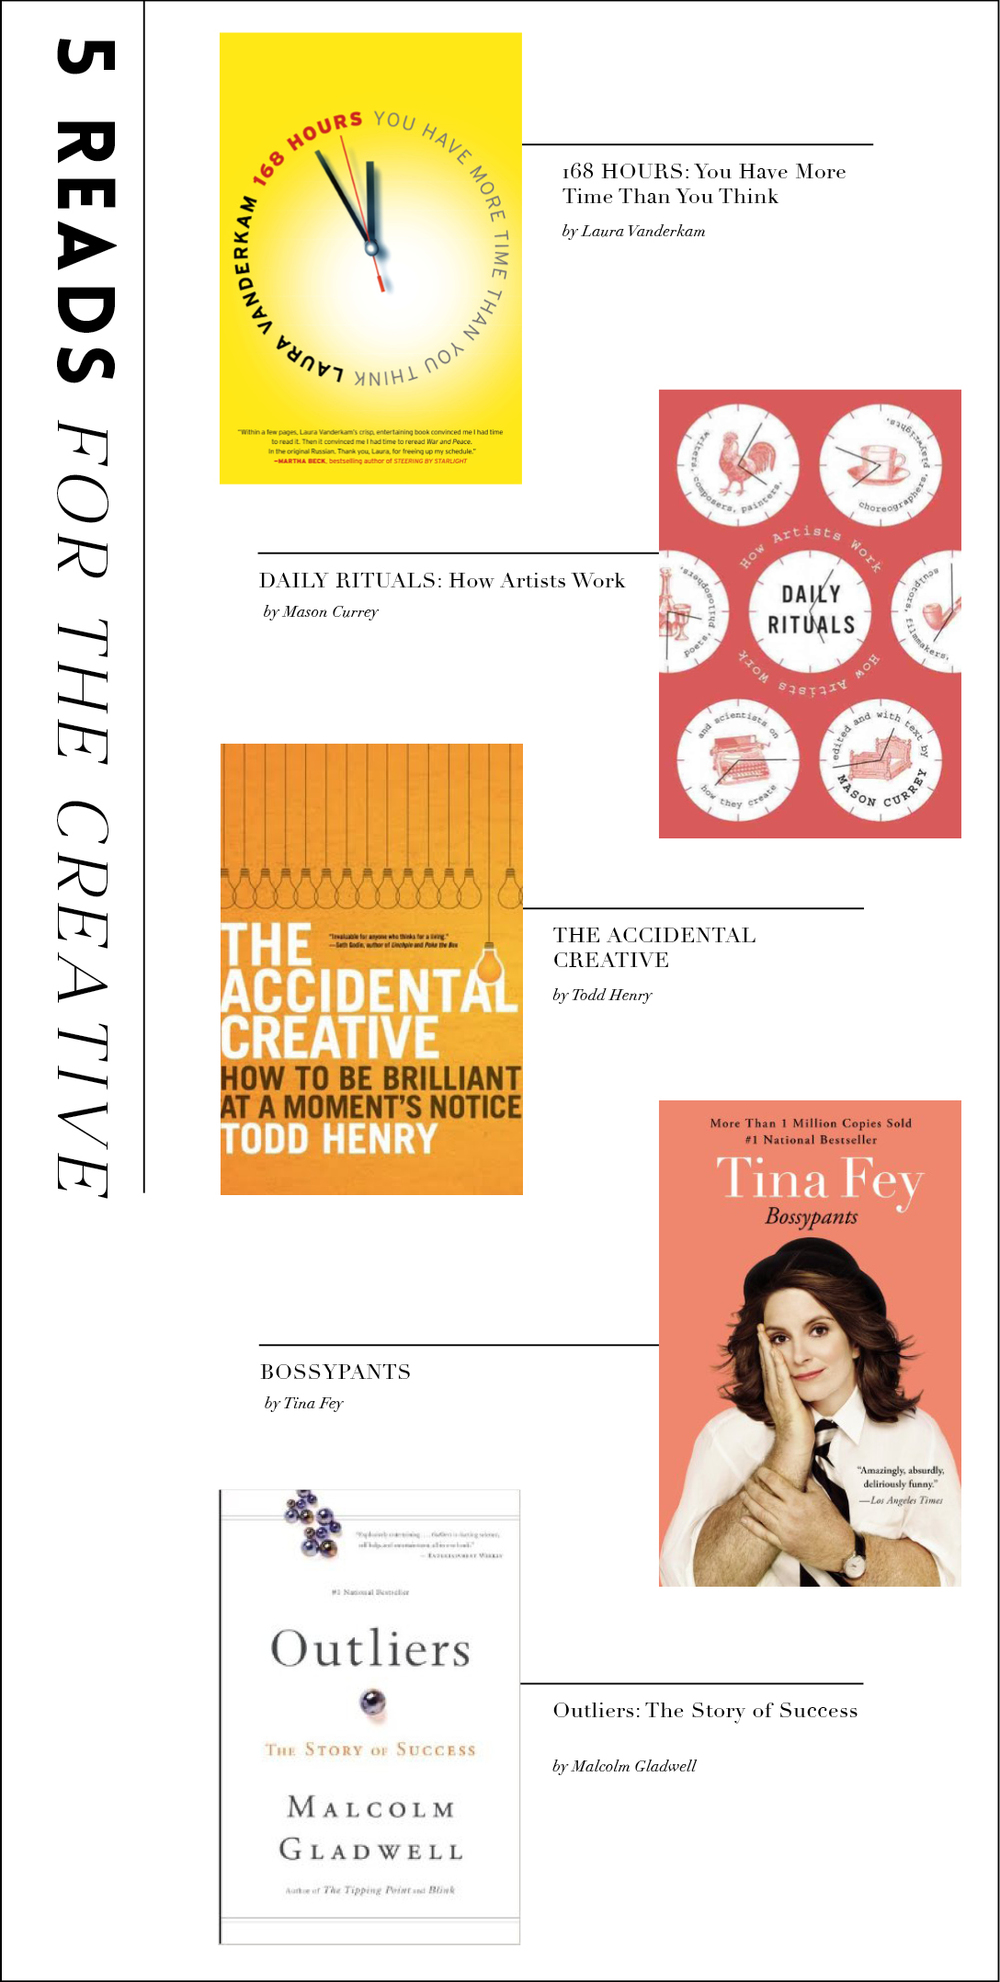 5 books every creative should read by hart & honey